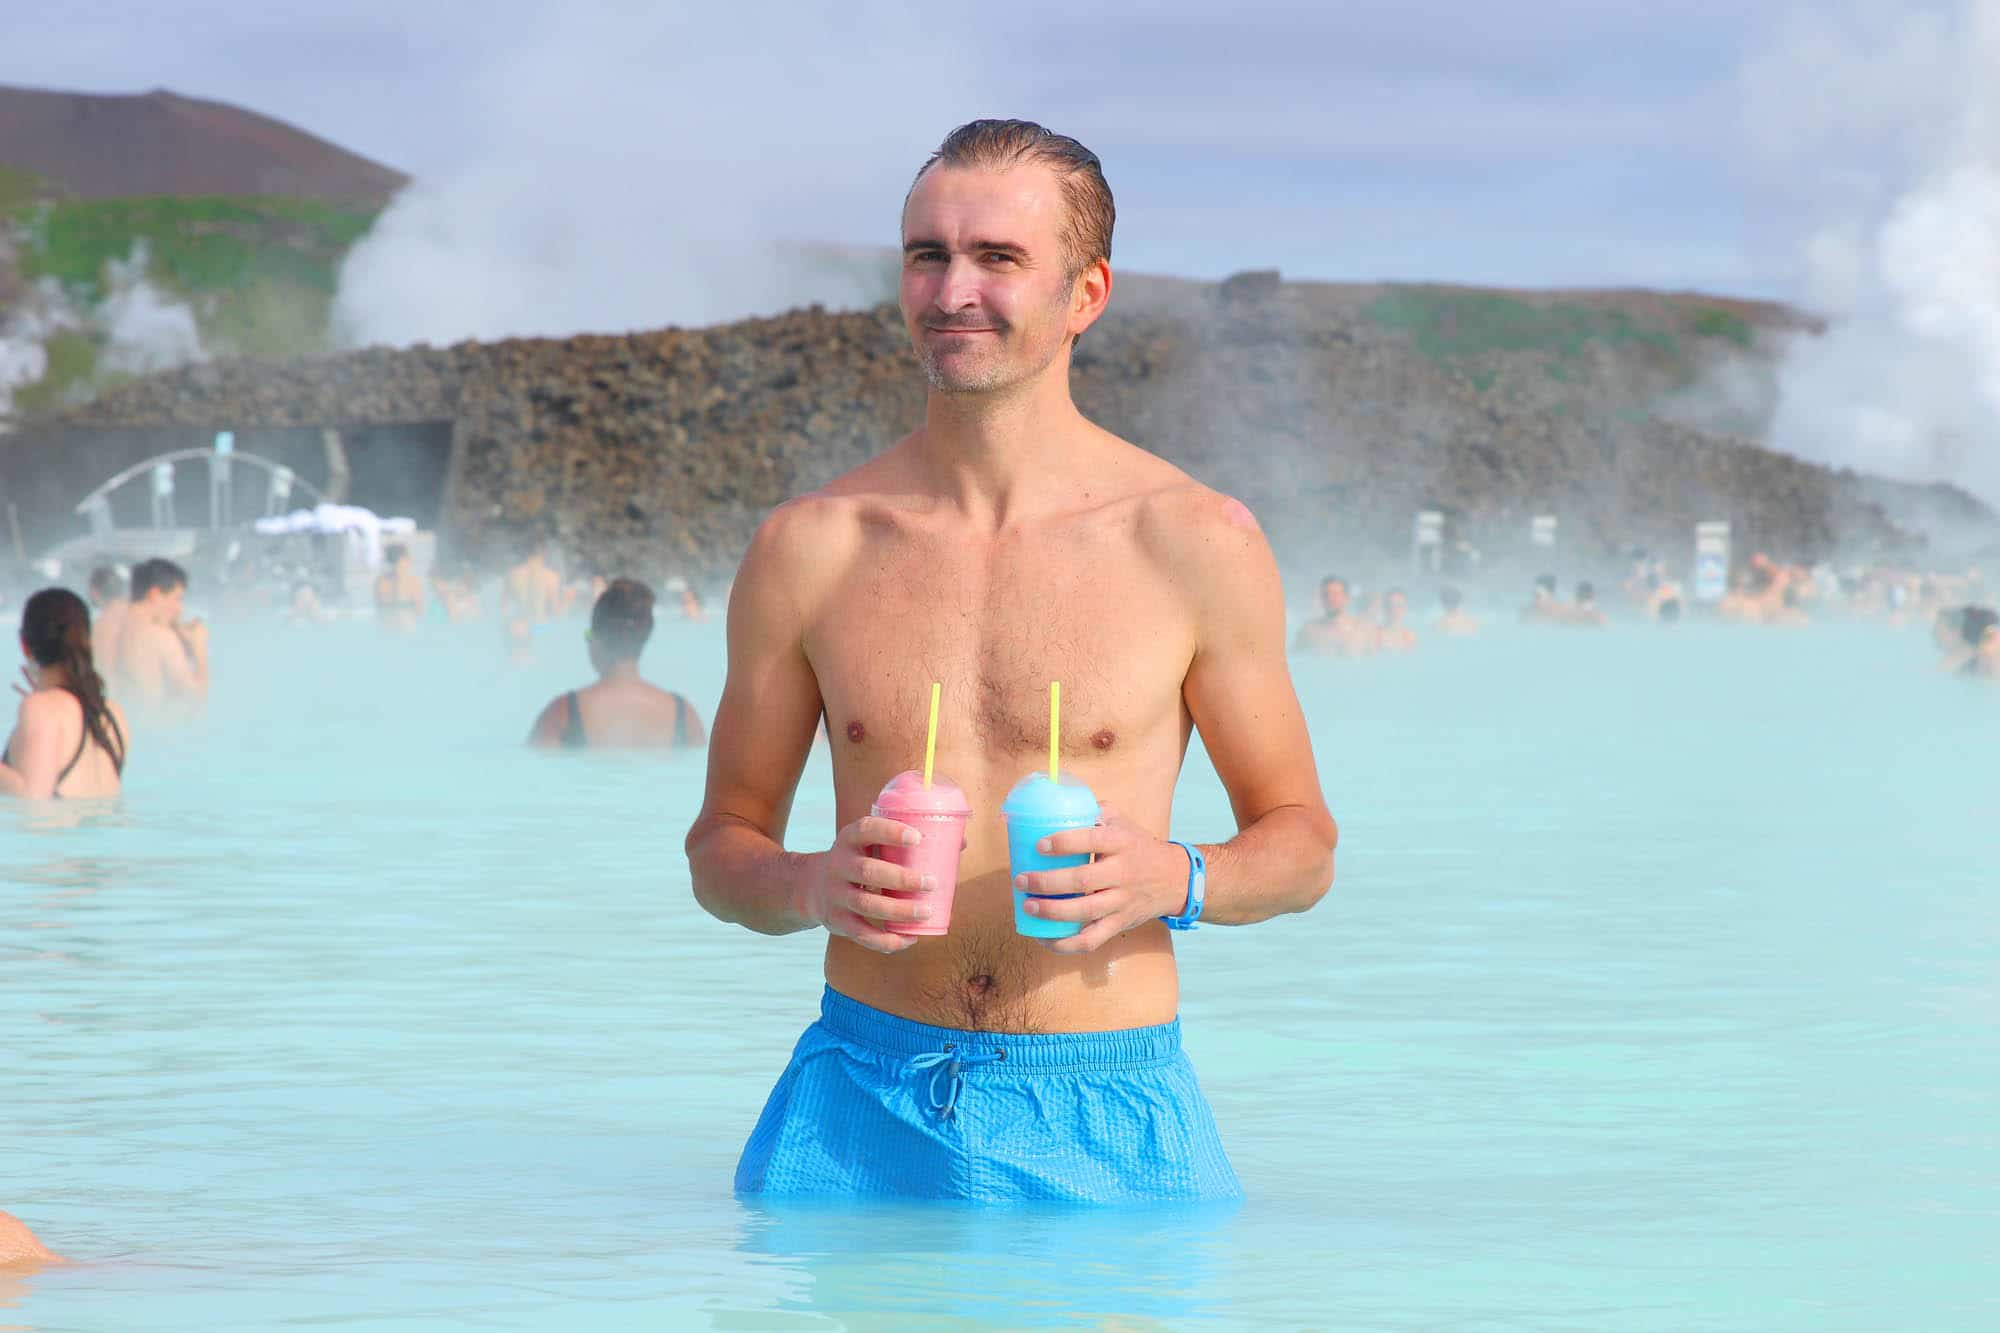 The Blue Lagoon - Reykjavik bachelor party - Iceland with friends